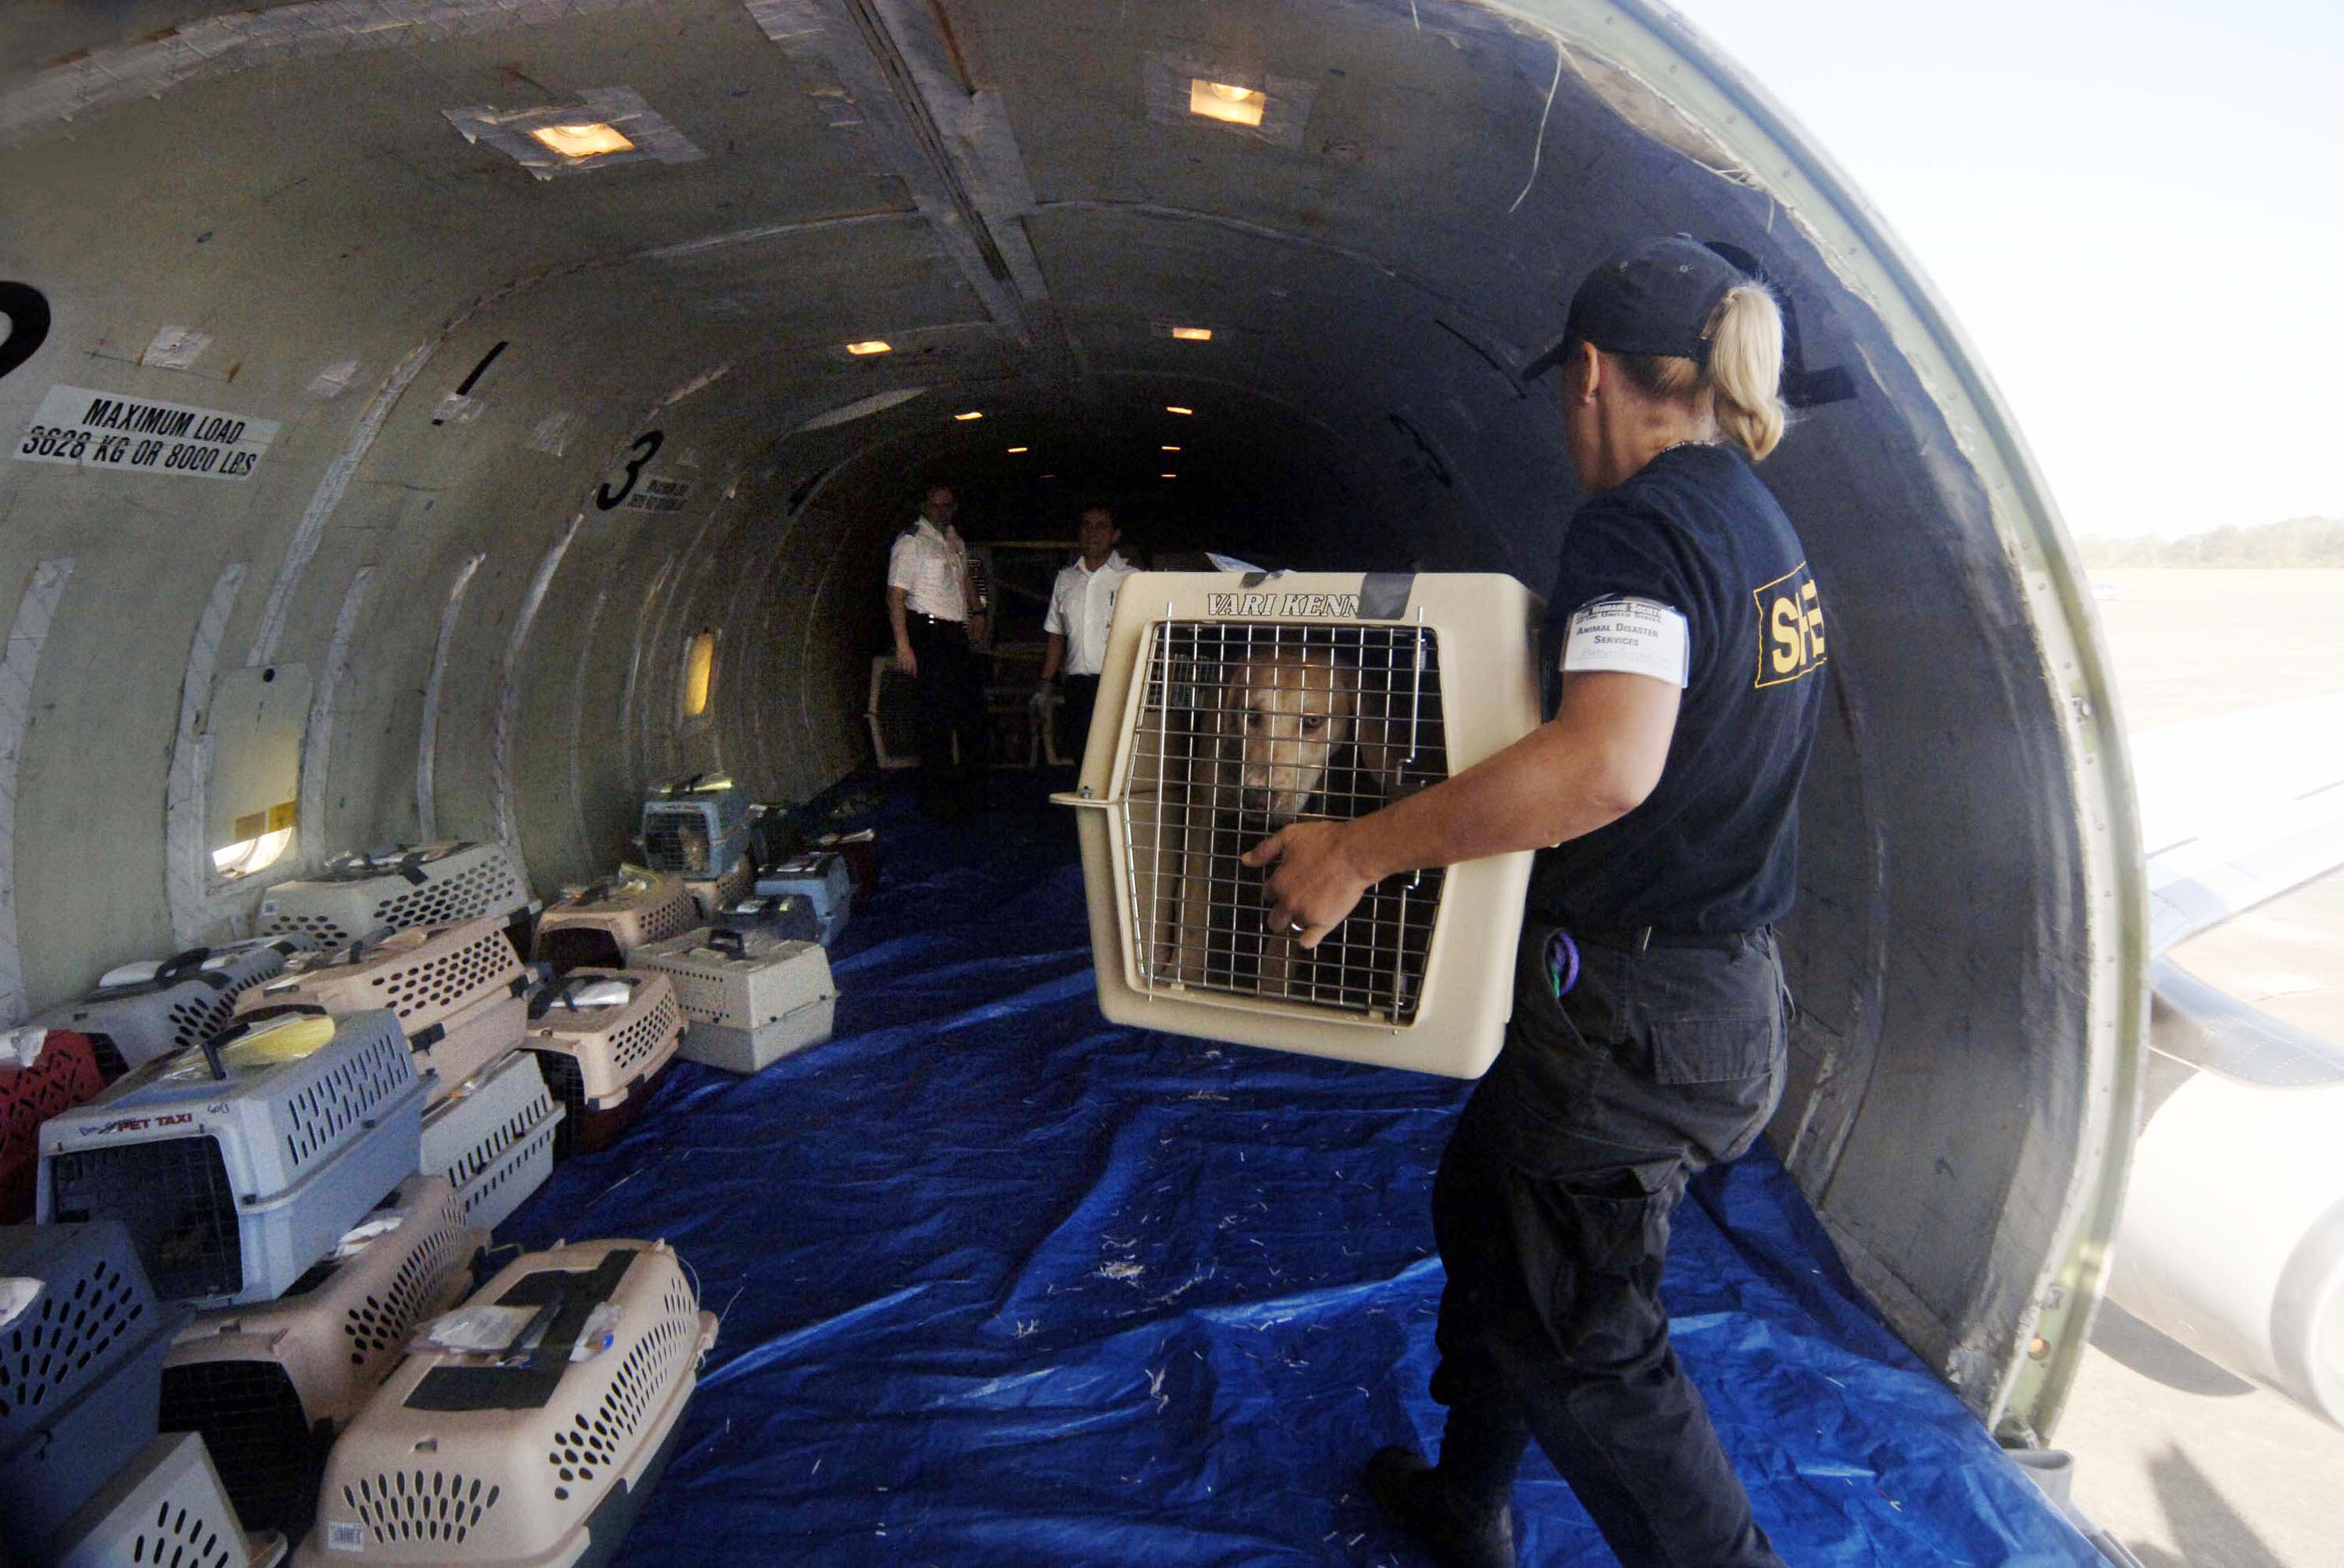 HATTIESBURG, MS - SEPT. 22: A worker with the Humane Society of Missouri loads a dog in a cage on a plane for flight transport to St. Louis, Missouri, Sept. 22, 2005 in Hattiesburg, Mississippi. The dog is one of over 100 being transported to be taken in by foster owners until they can be reunited with their owners or placed for permanent adoption. Together the United States Humane Society and the Humane Society of Missouri have rescued thousands of pets since Hurricane Katrina devastated the Mississippi Gulf Coast and New Orleans. (Photo by Marianne Todd/Getty Images)